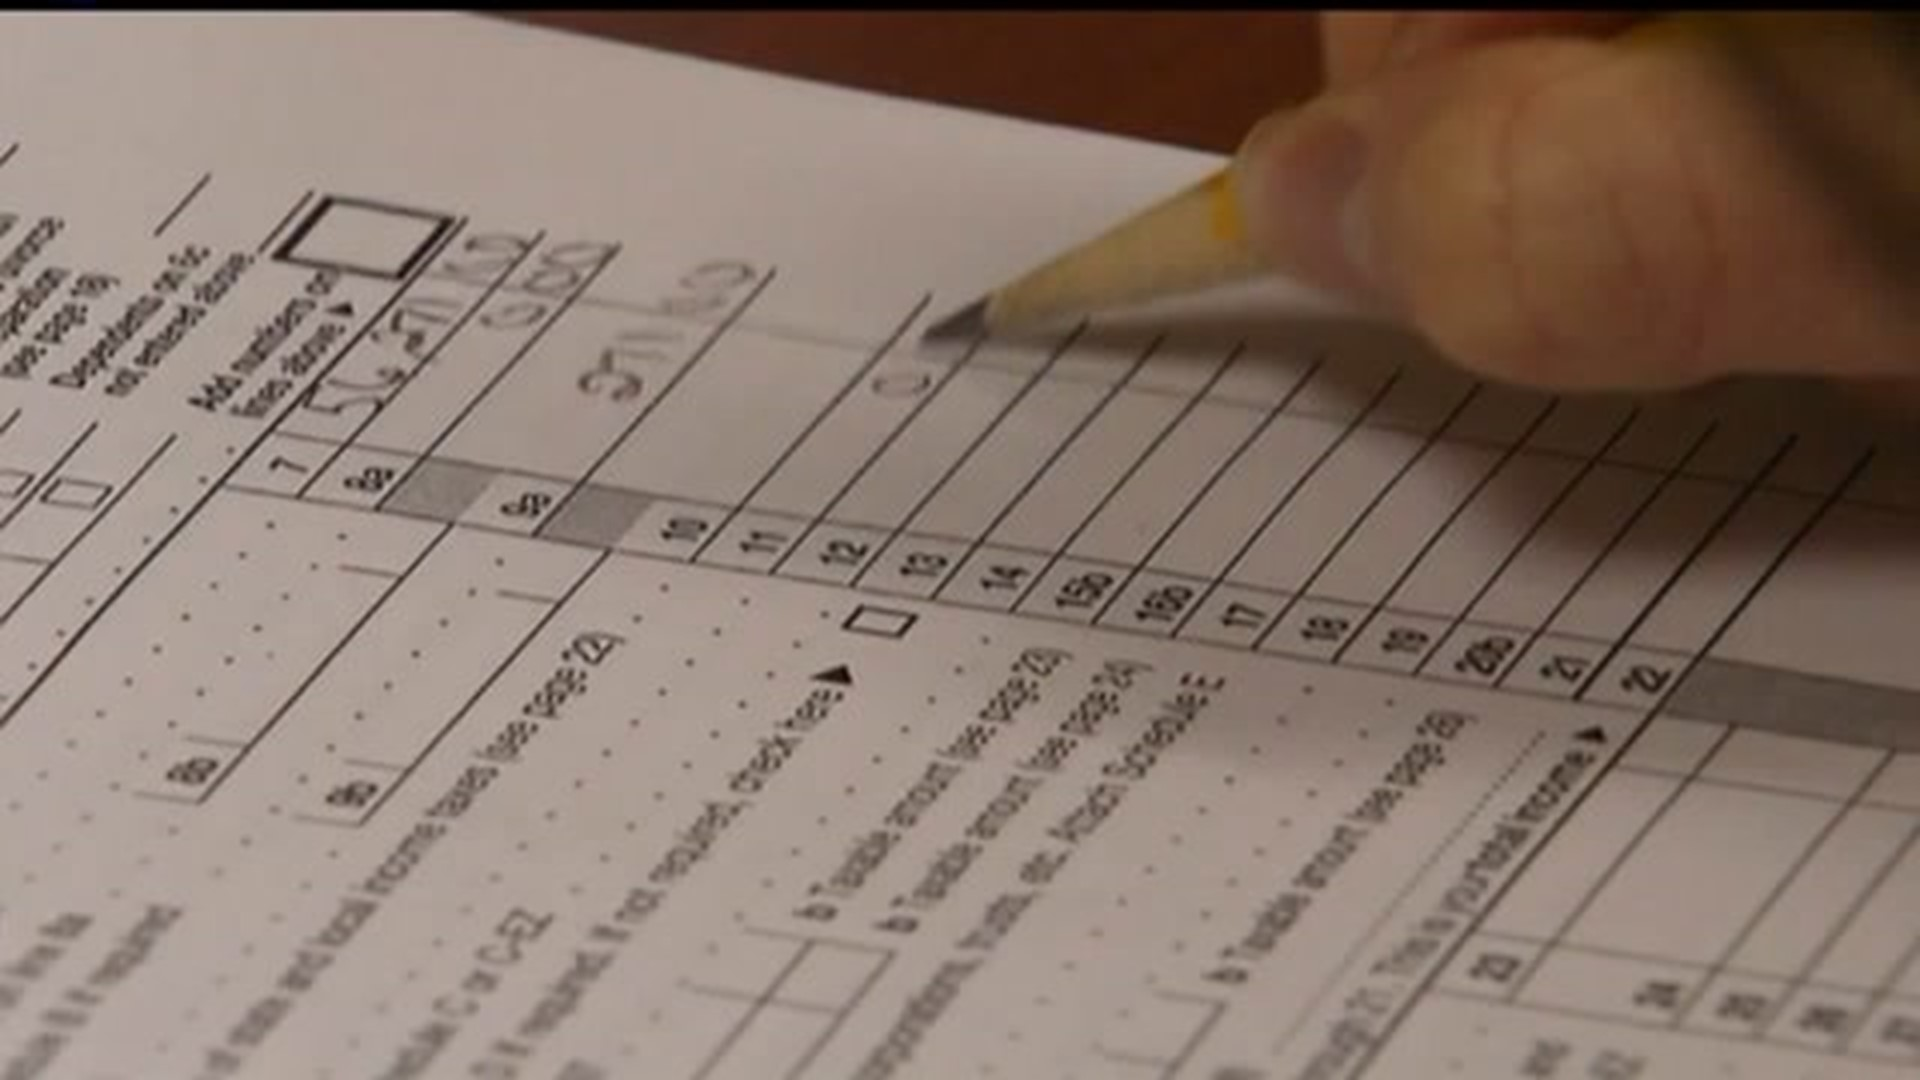 Where's my tax refund? How to check on the status of your money | fox43.com